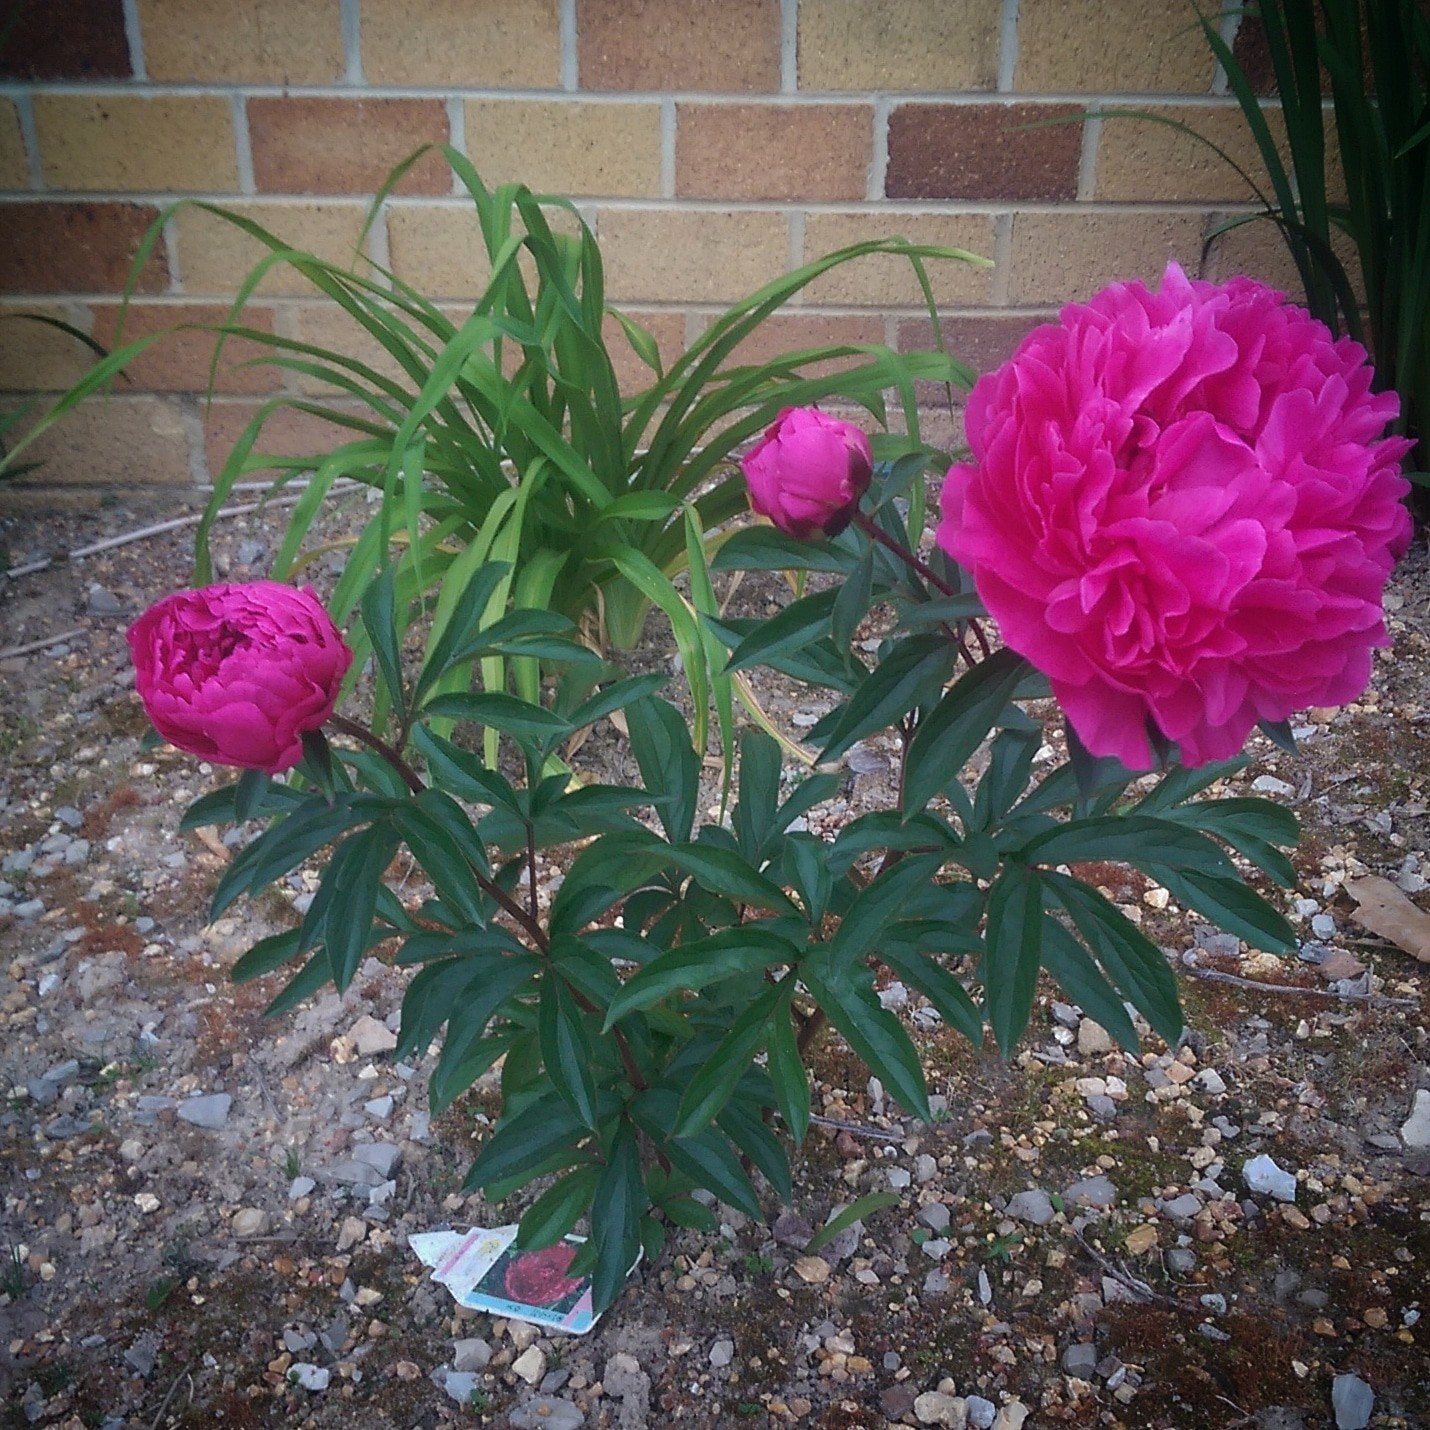 The peonies are beautiful this year.